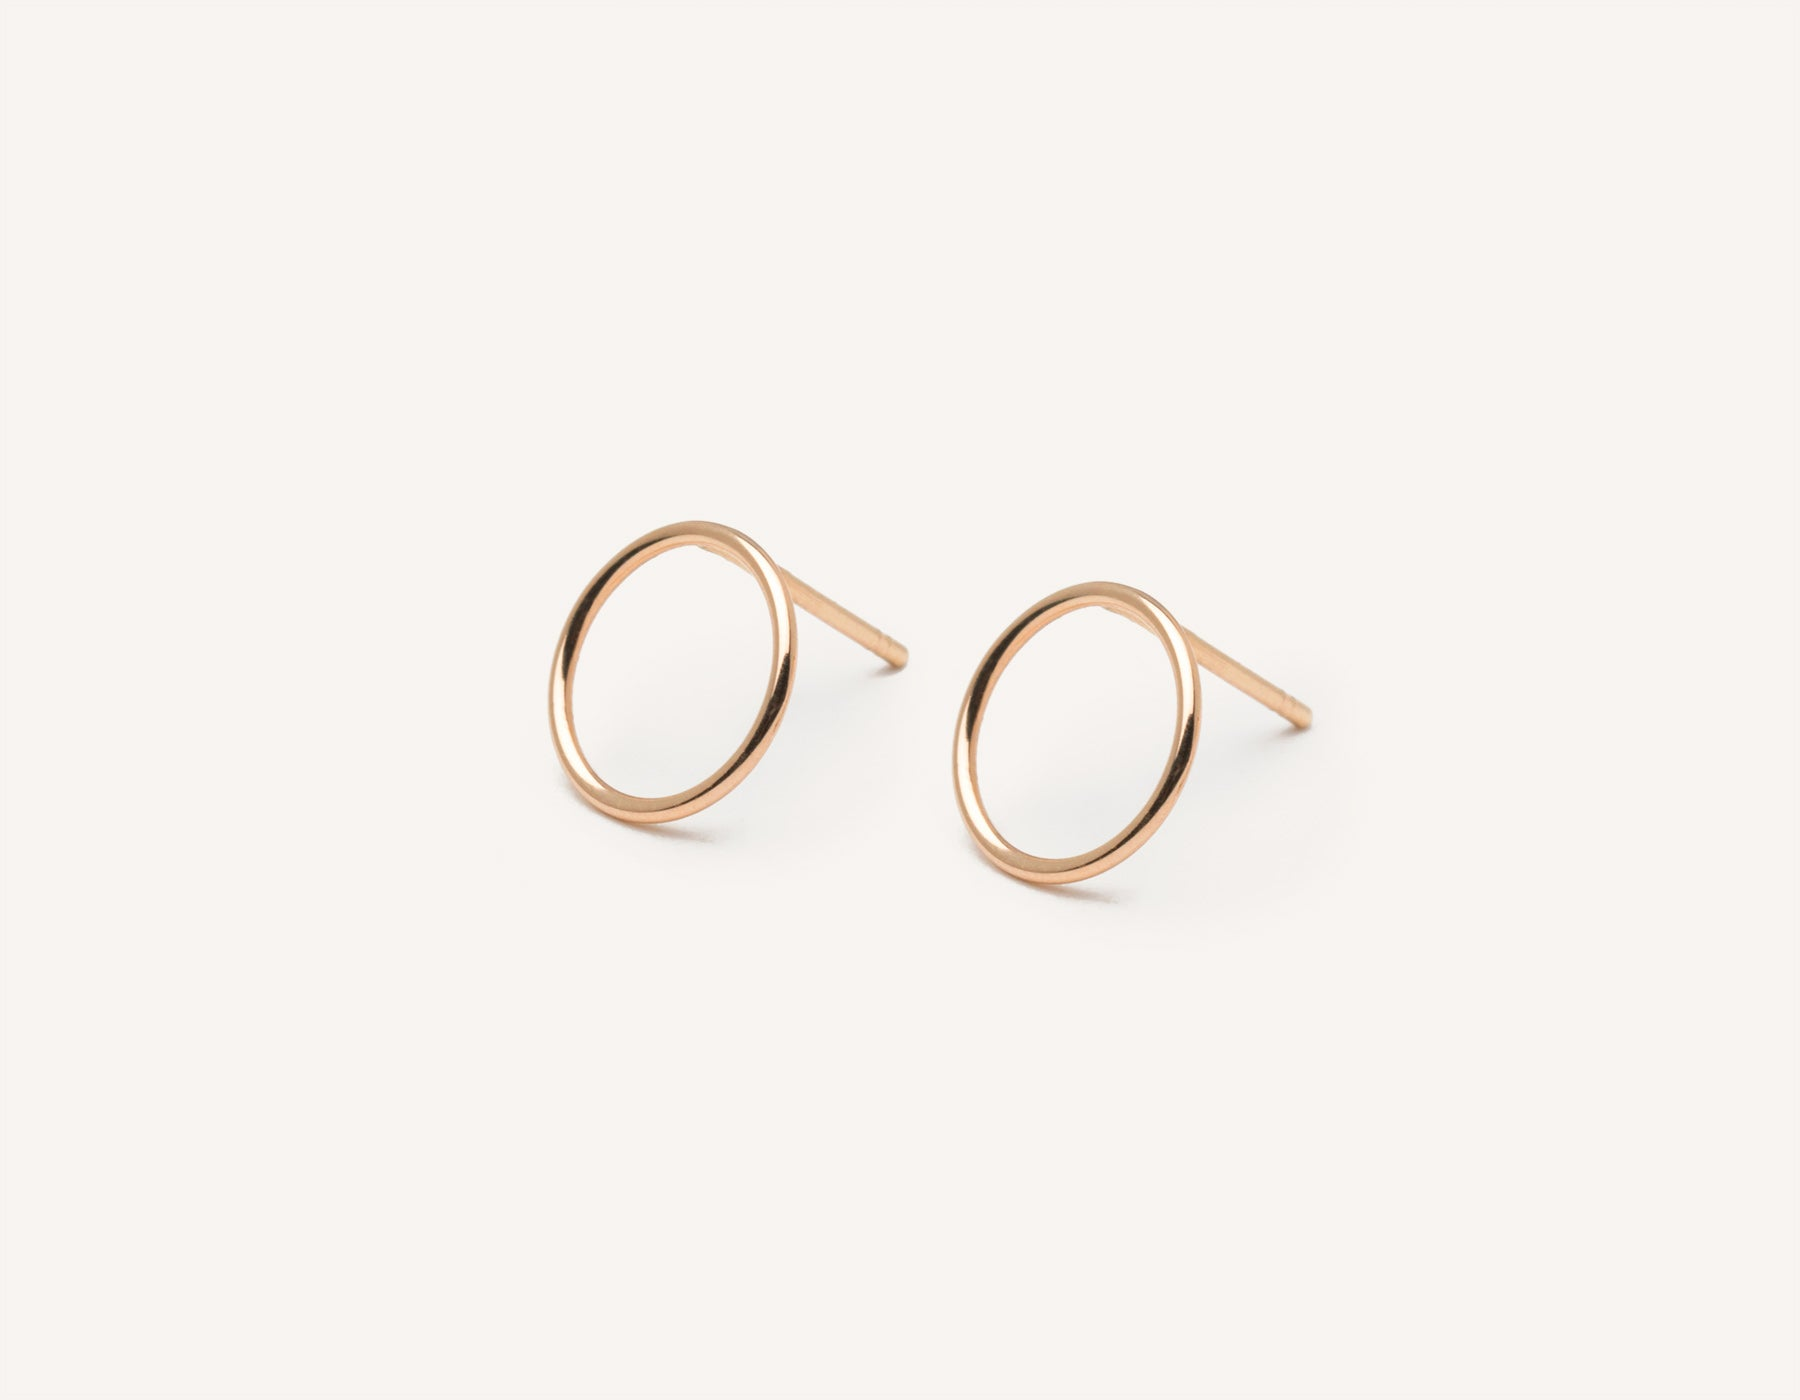 Vrai and Oro modern minimalist Circle Studs 14k solid gold post earrings , 14K Rose Gold